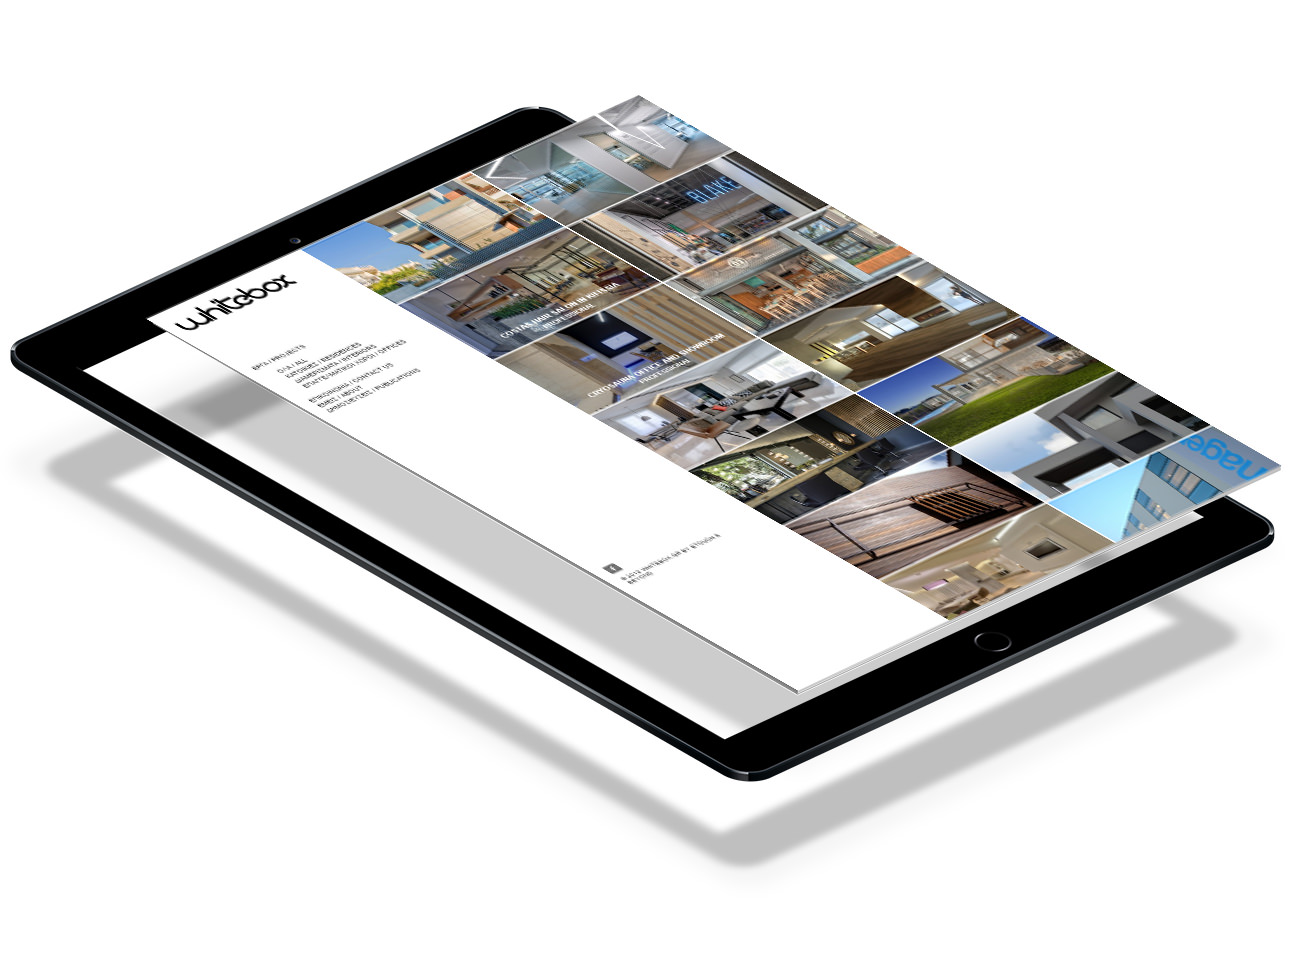 ipad-whitebox